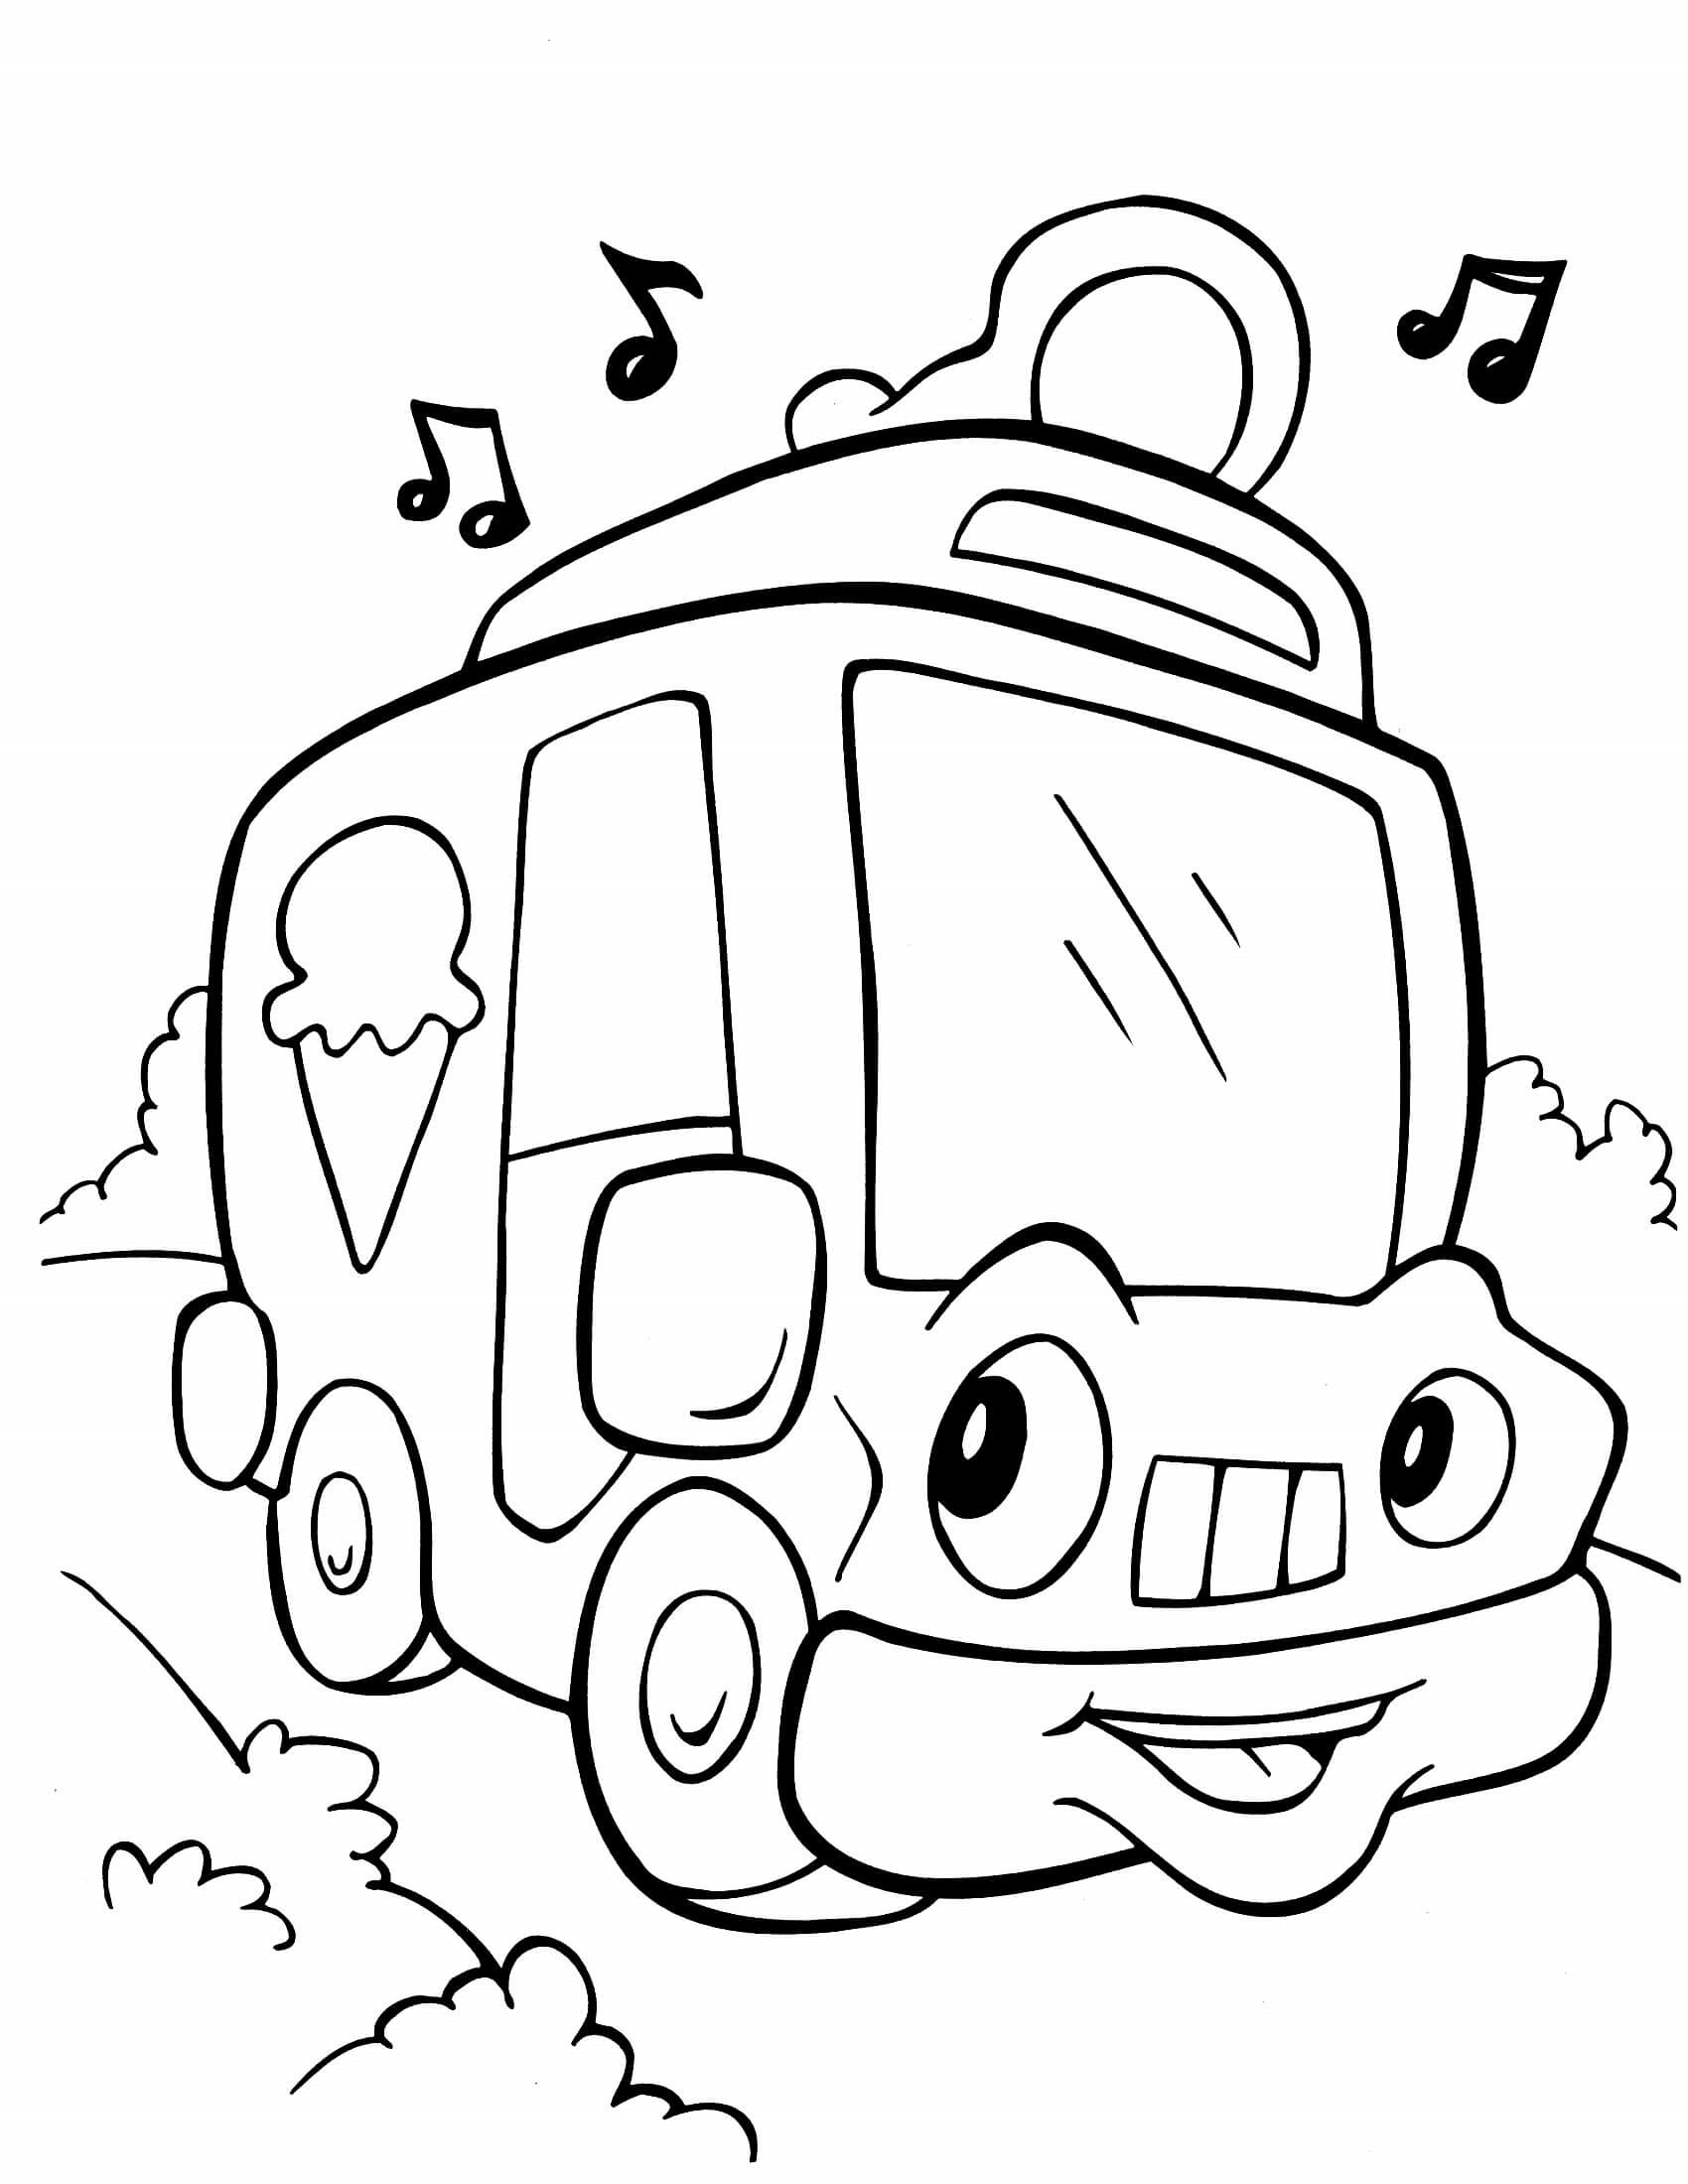 Crayola Coloring Pages Vehicle Learning Printable